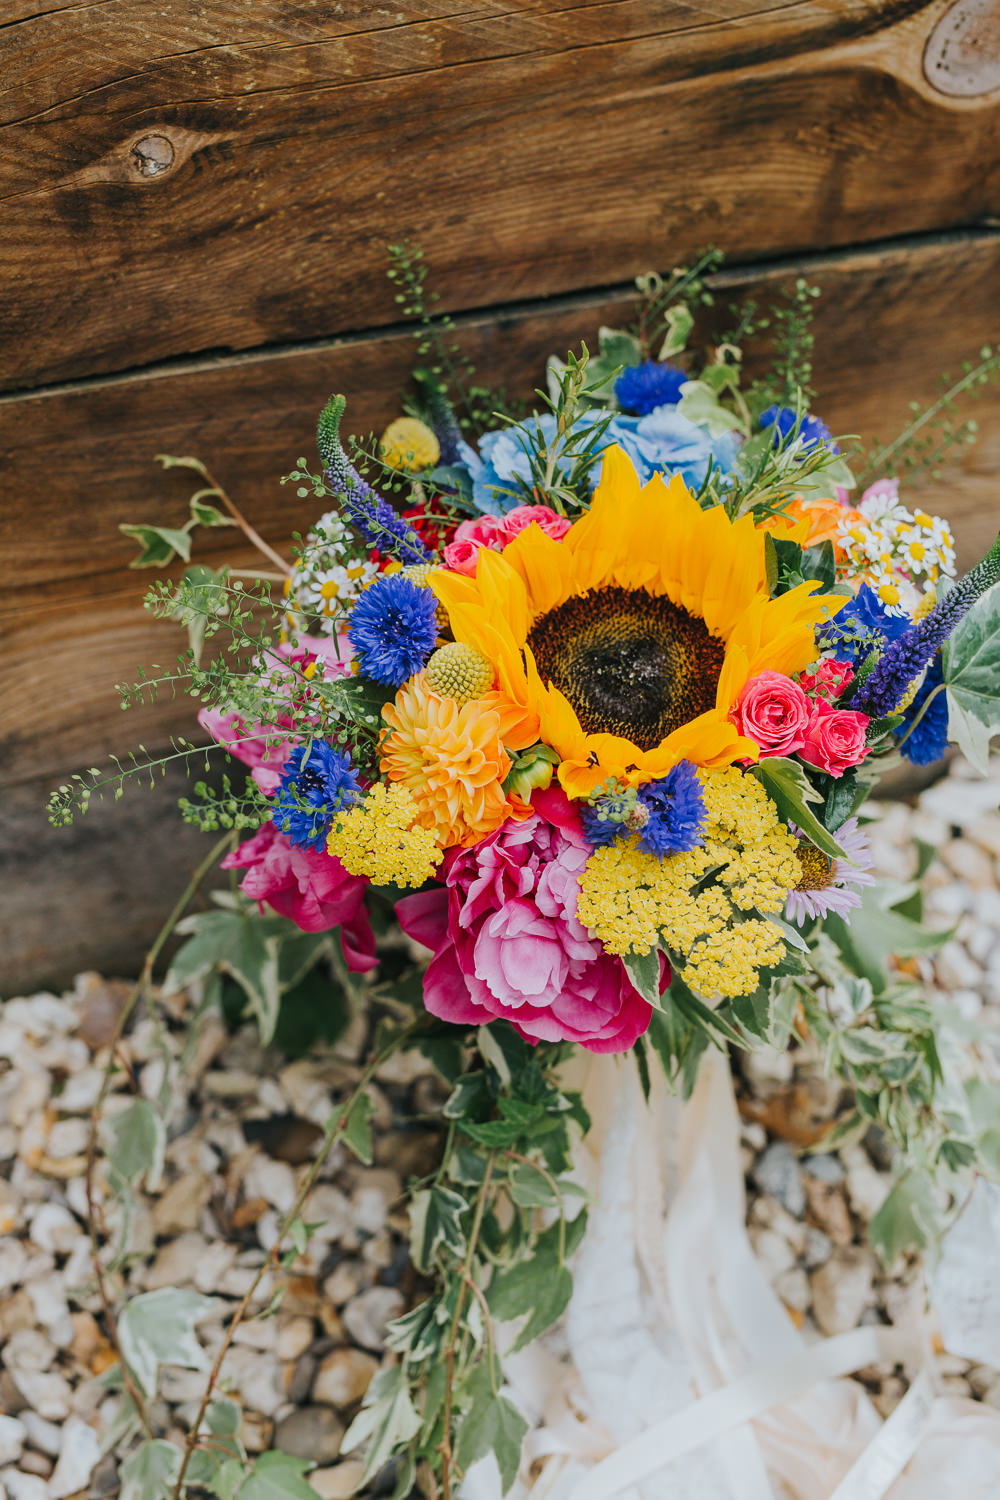 Bouquet Flowers Bride Bridal Peony Hydrangea Sunflower Daisy Cornflowers Craspedia Ribbons Colourful Bright Summer Pub Wedding Charlotte Razzell Photography